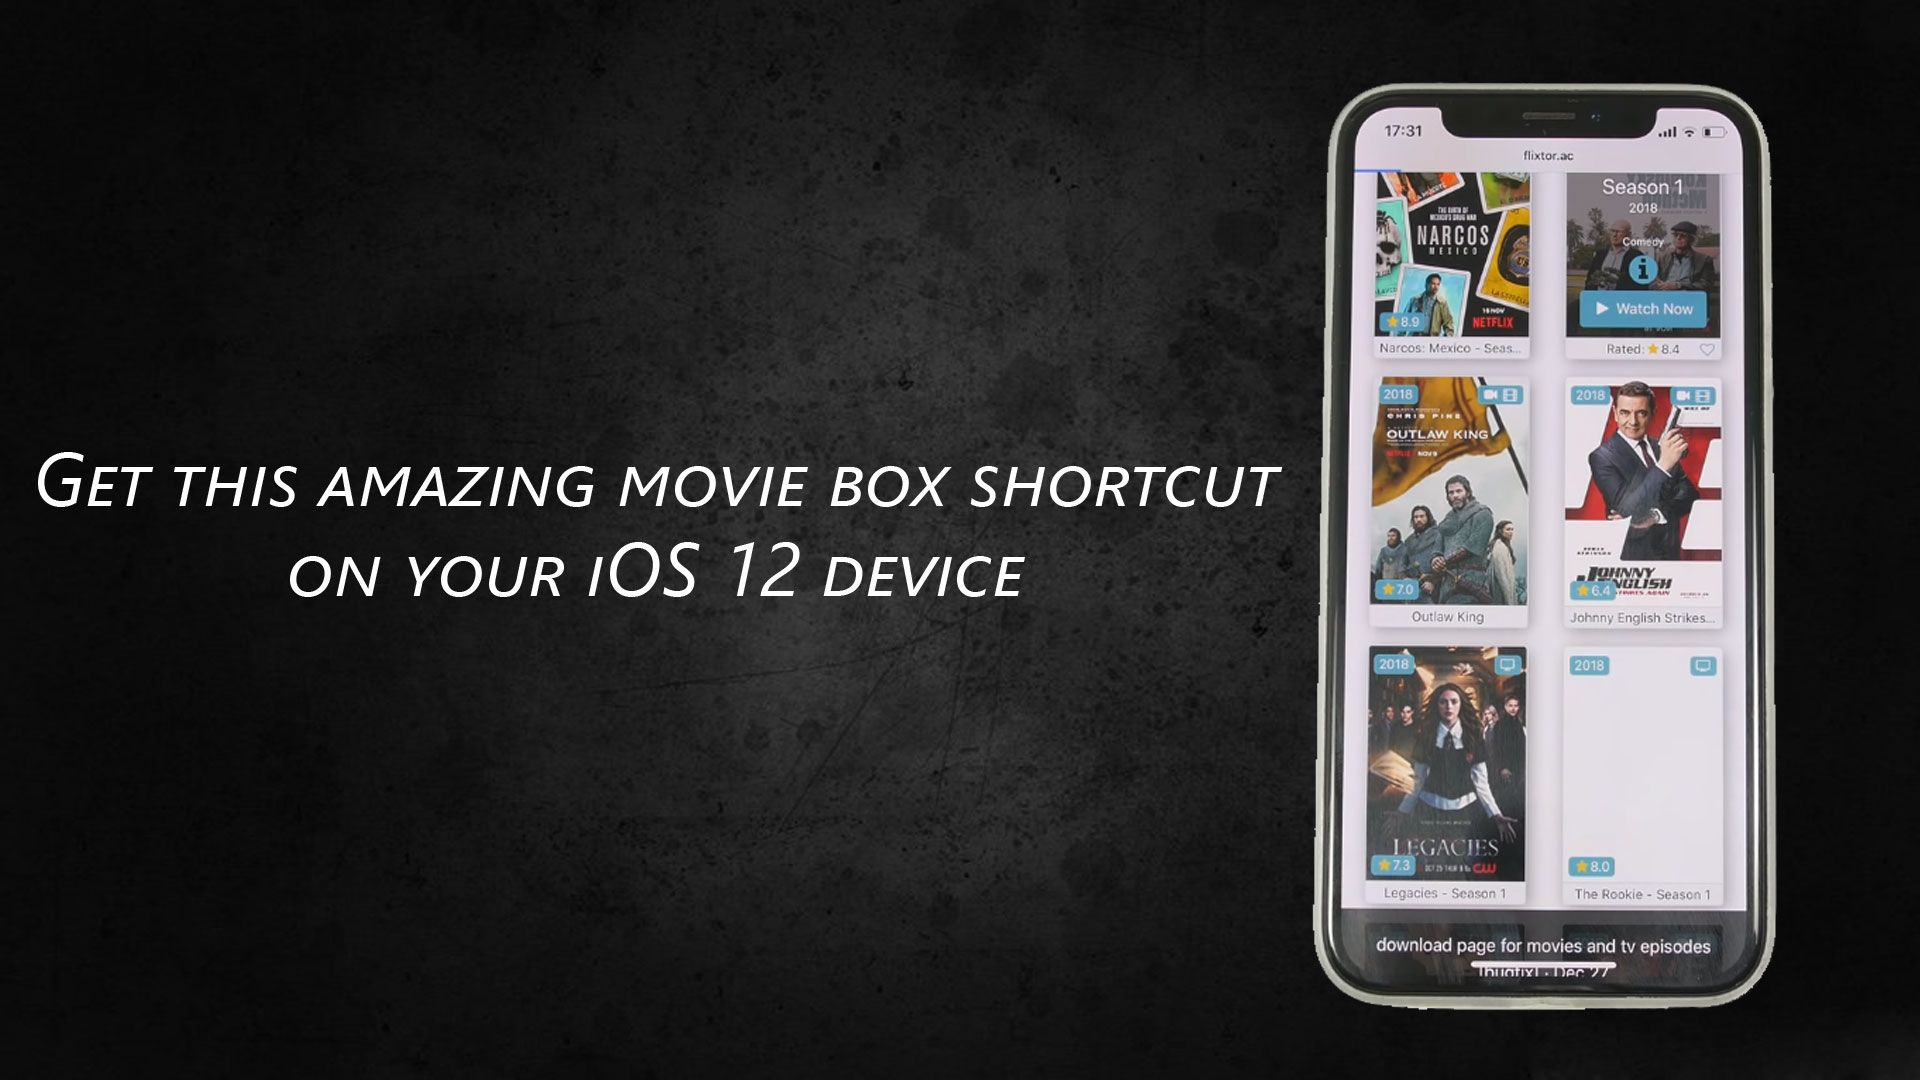 Get this free movie box app shortcut on your iOS 12 device